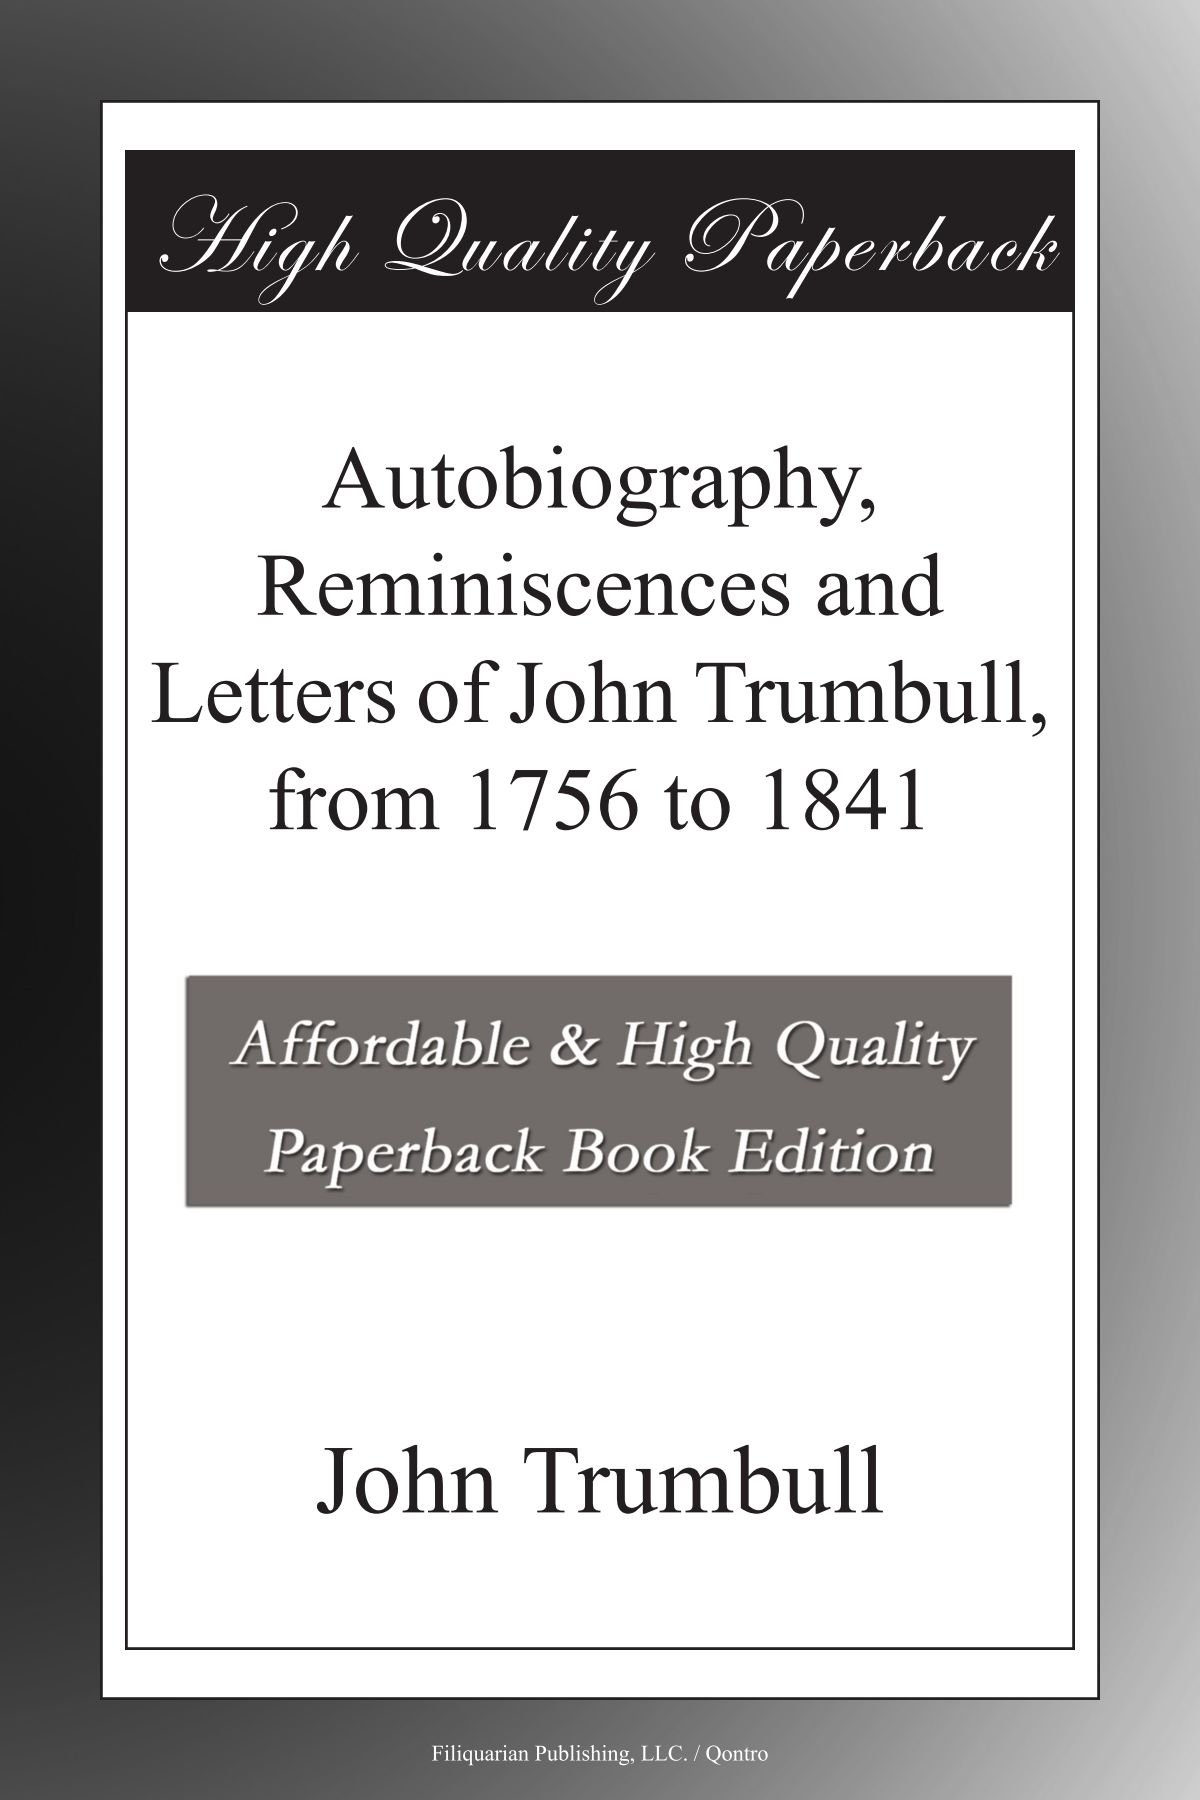 Download Autobiography, Reminiscences and Letters of John Trumbull, from 1756 to 1841 PDF